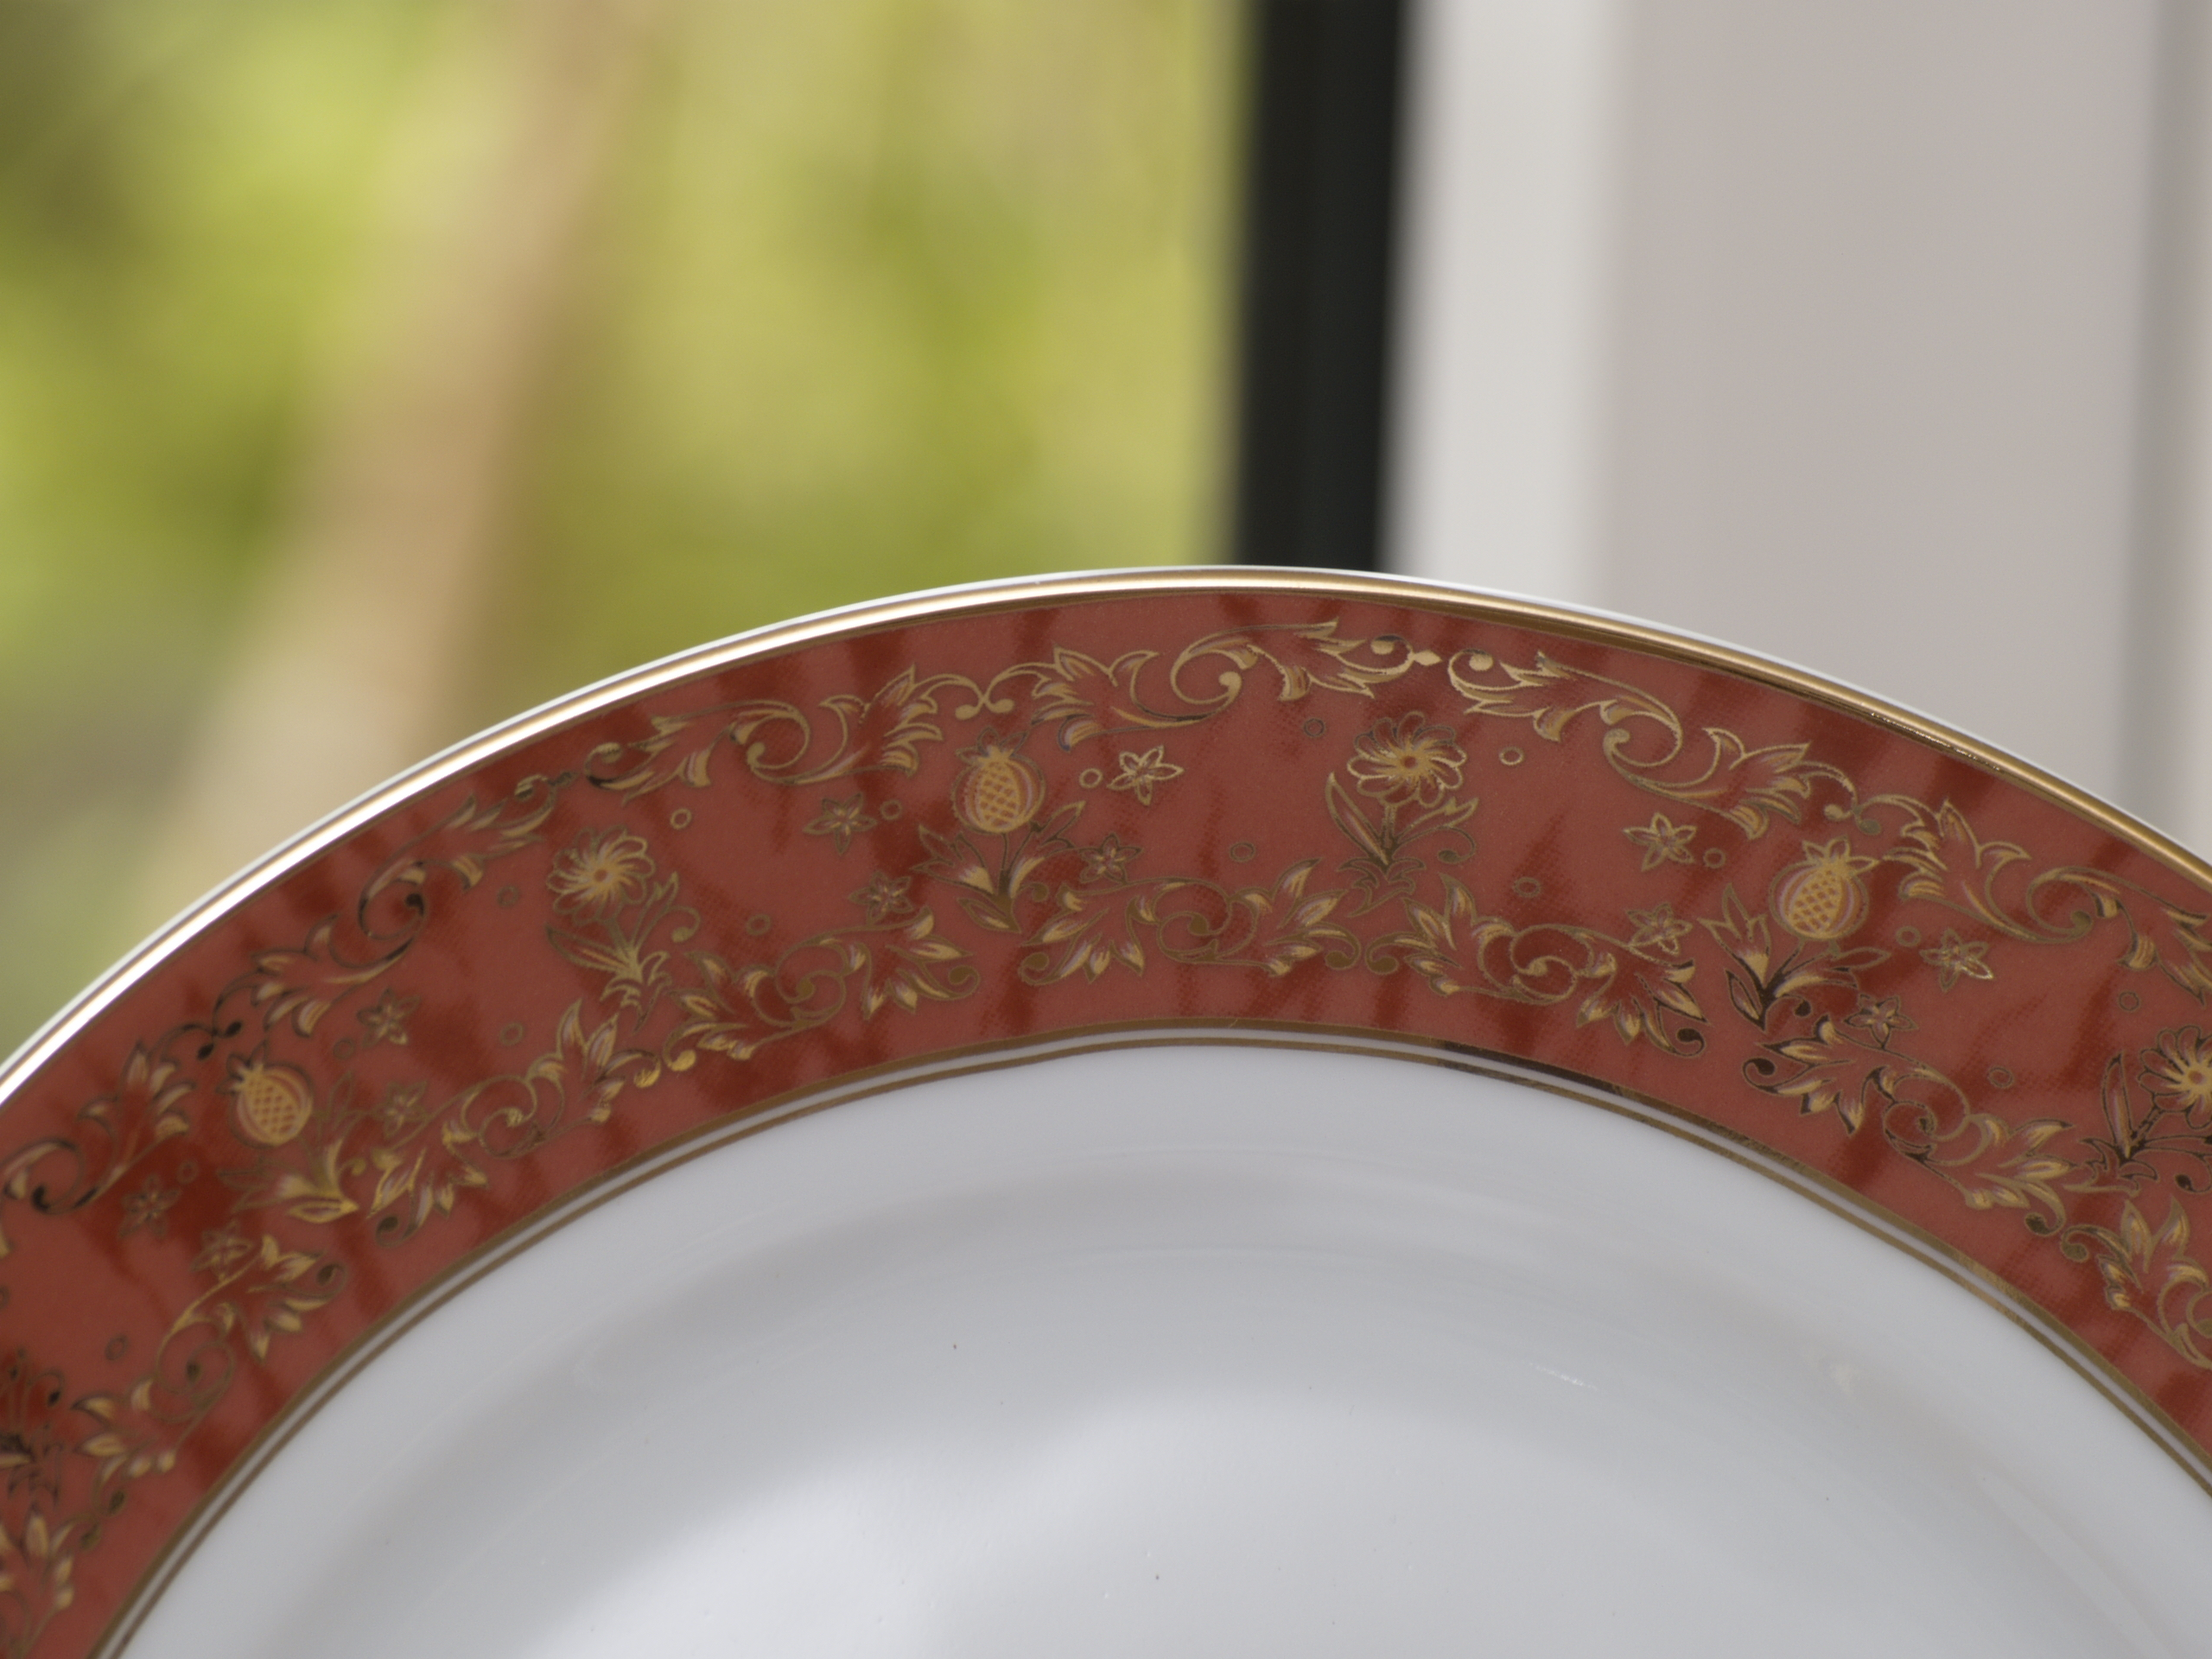 PALOMA RUST 56 PIECE DINNER SERVICE